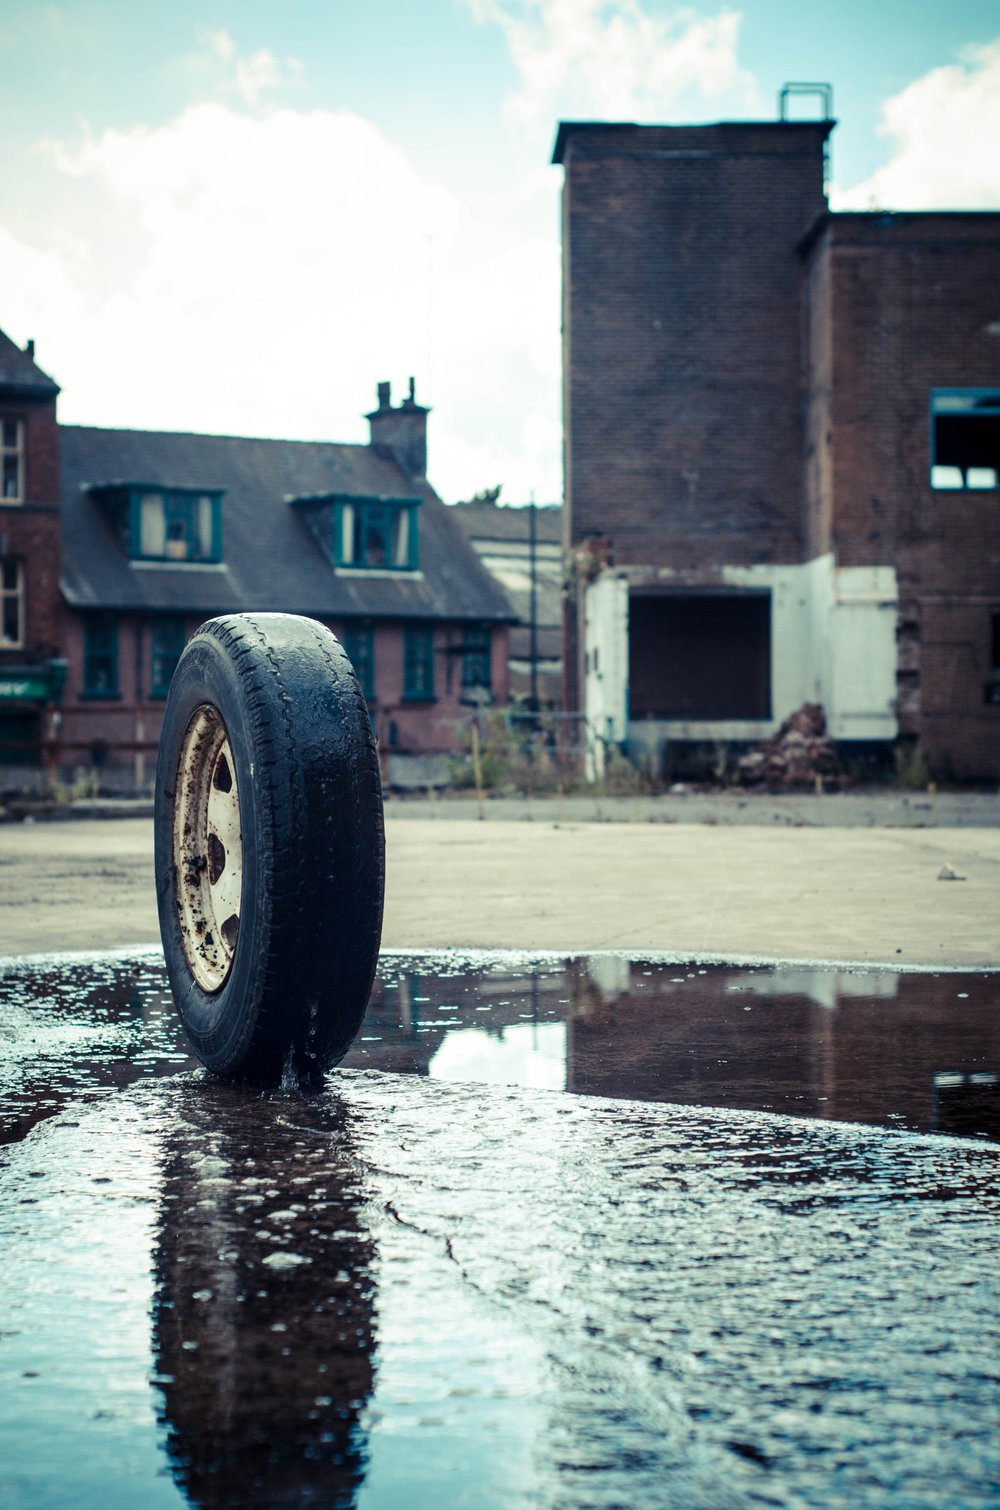 Brain Coaching isn't for you if you're kicking tyres, and not serious about developing your business.